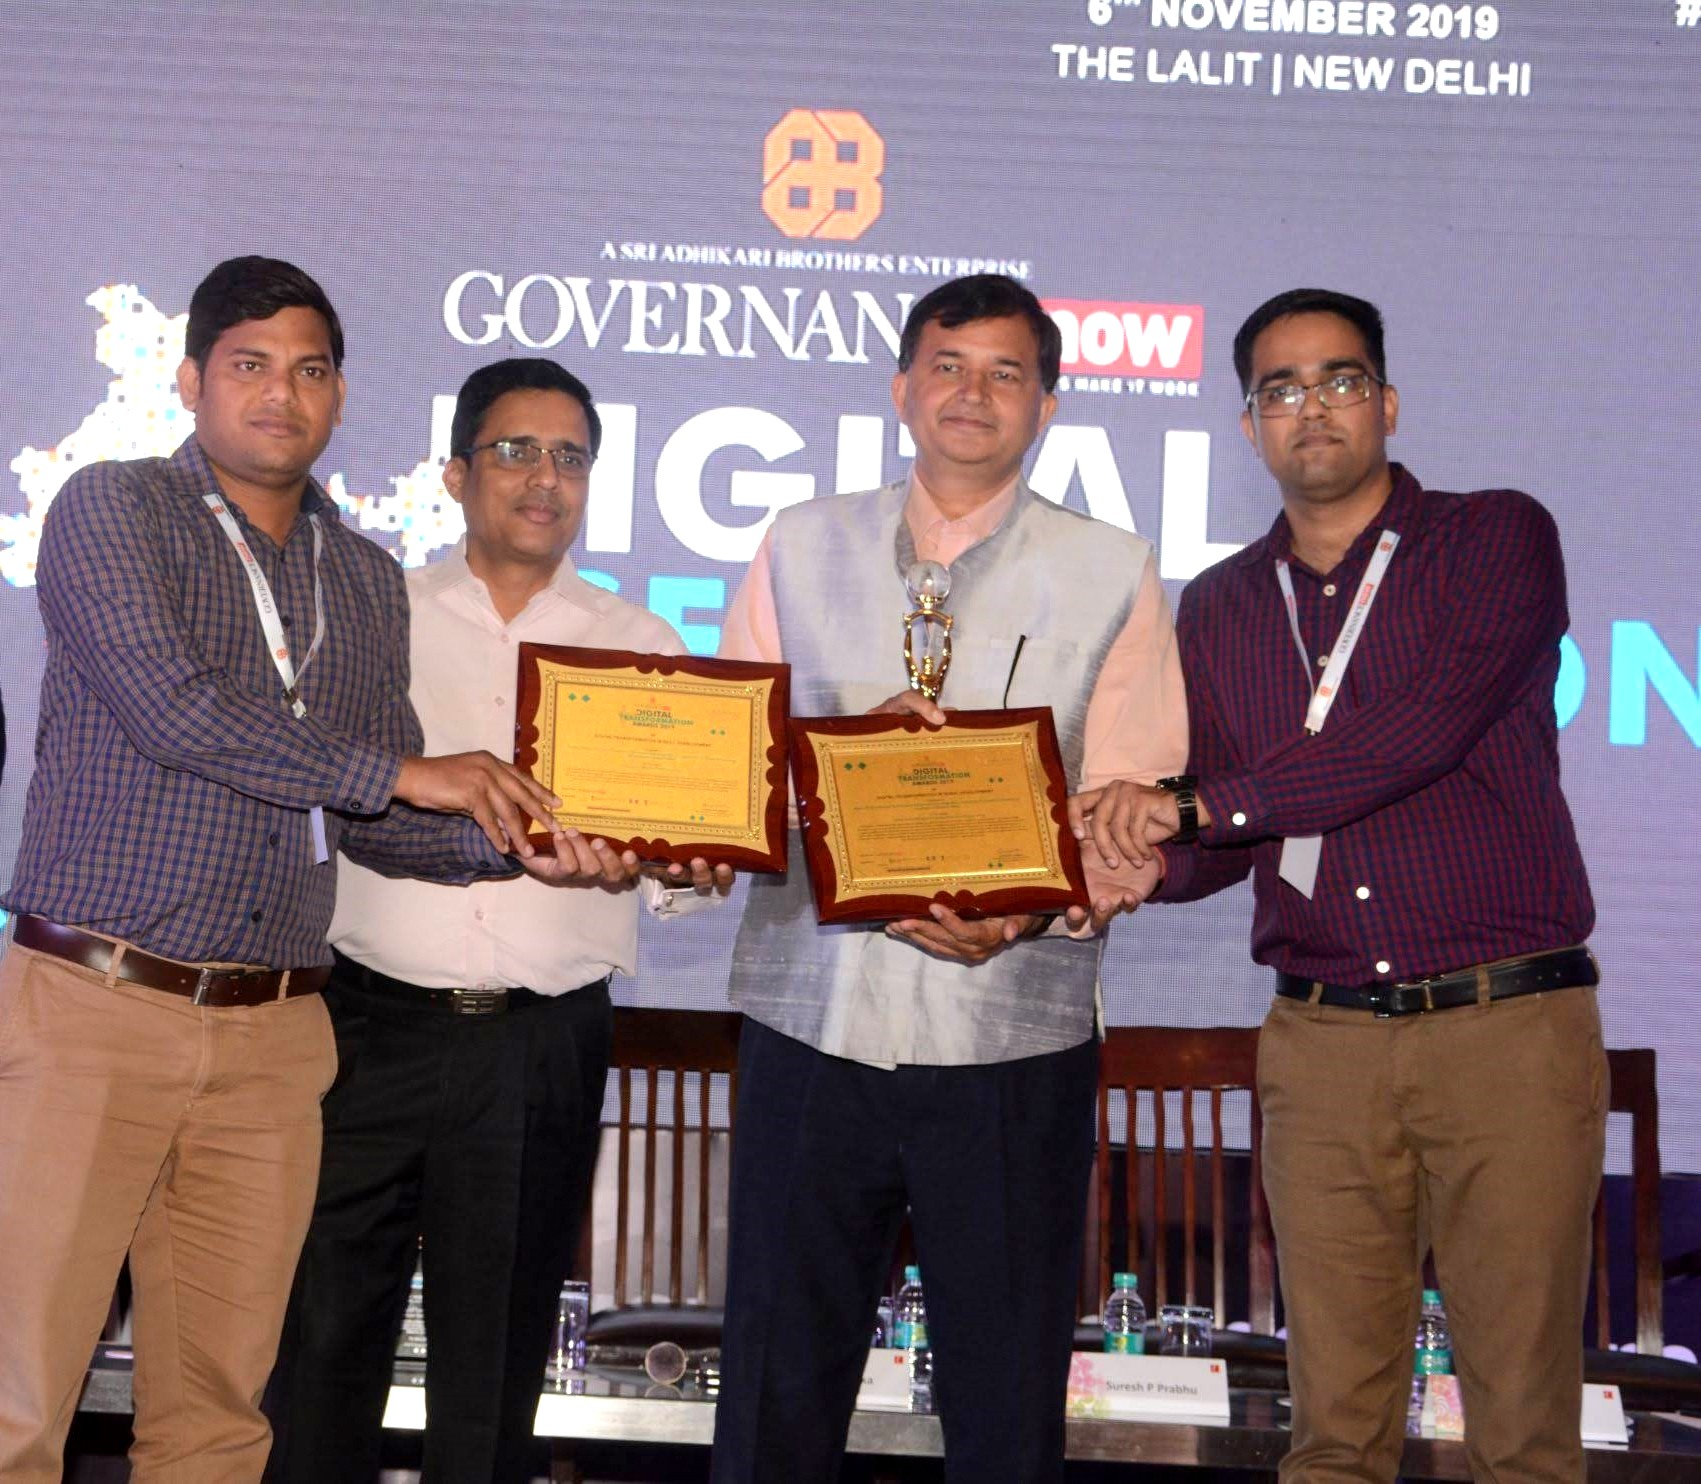 Online Works Management System (OWMS) and Computer Proficiency Certification Test (CPCT) won the Digital Transformation Award under Rural Development and Skill Development category respectively.